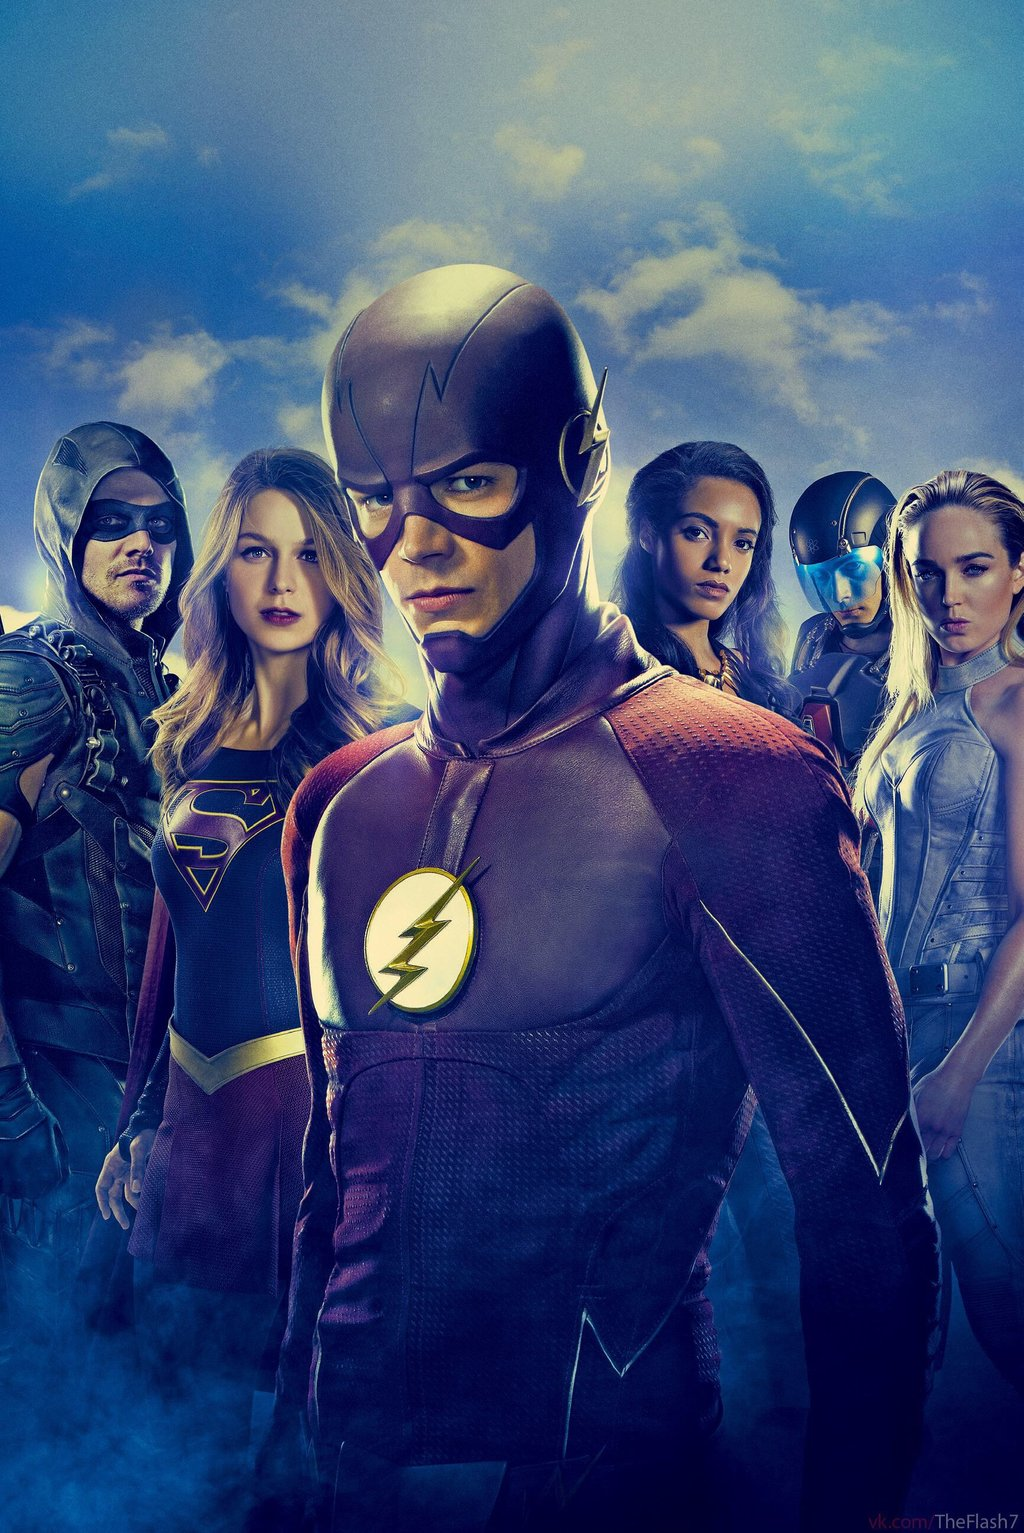 The Crossover Flash poster